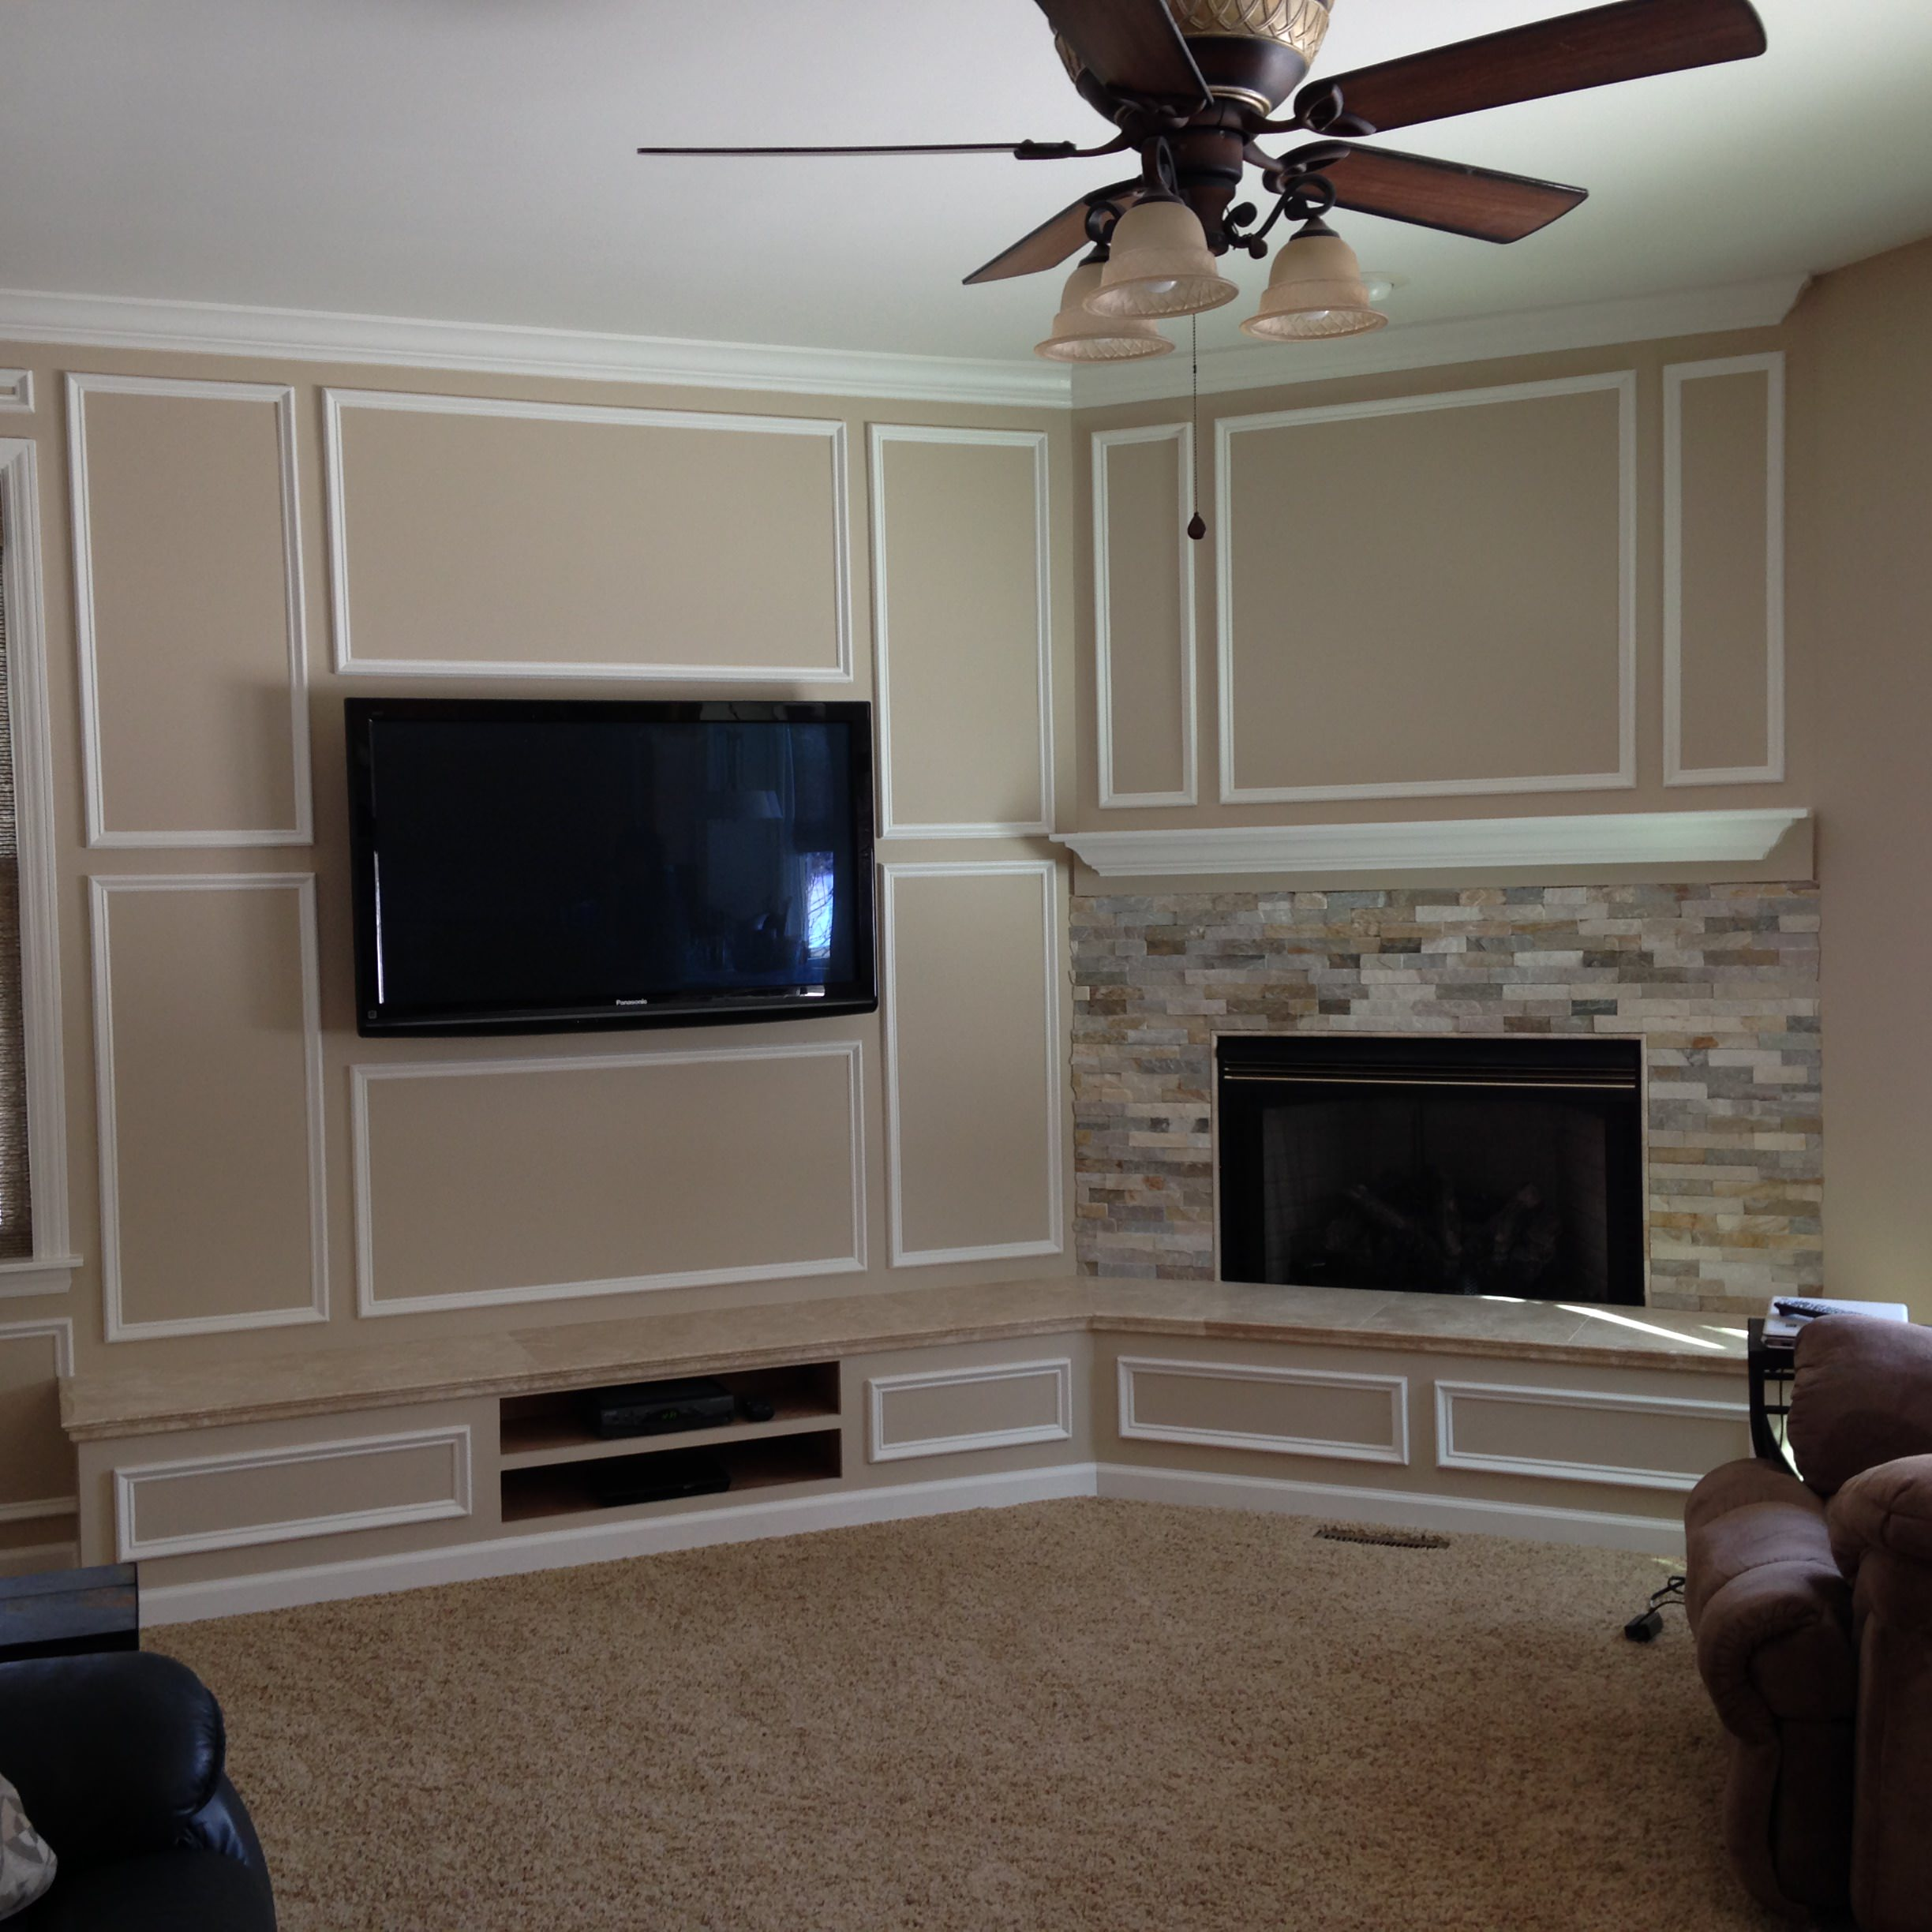 Before and After Media Wall/Fireplace